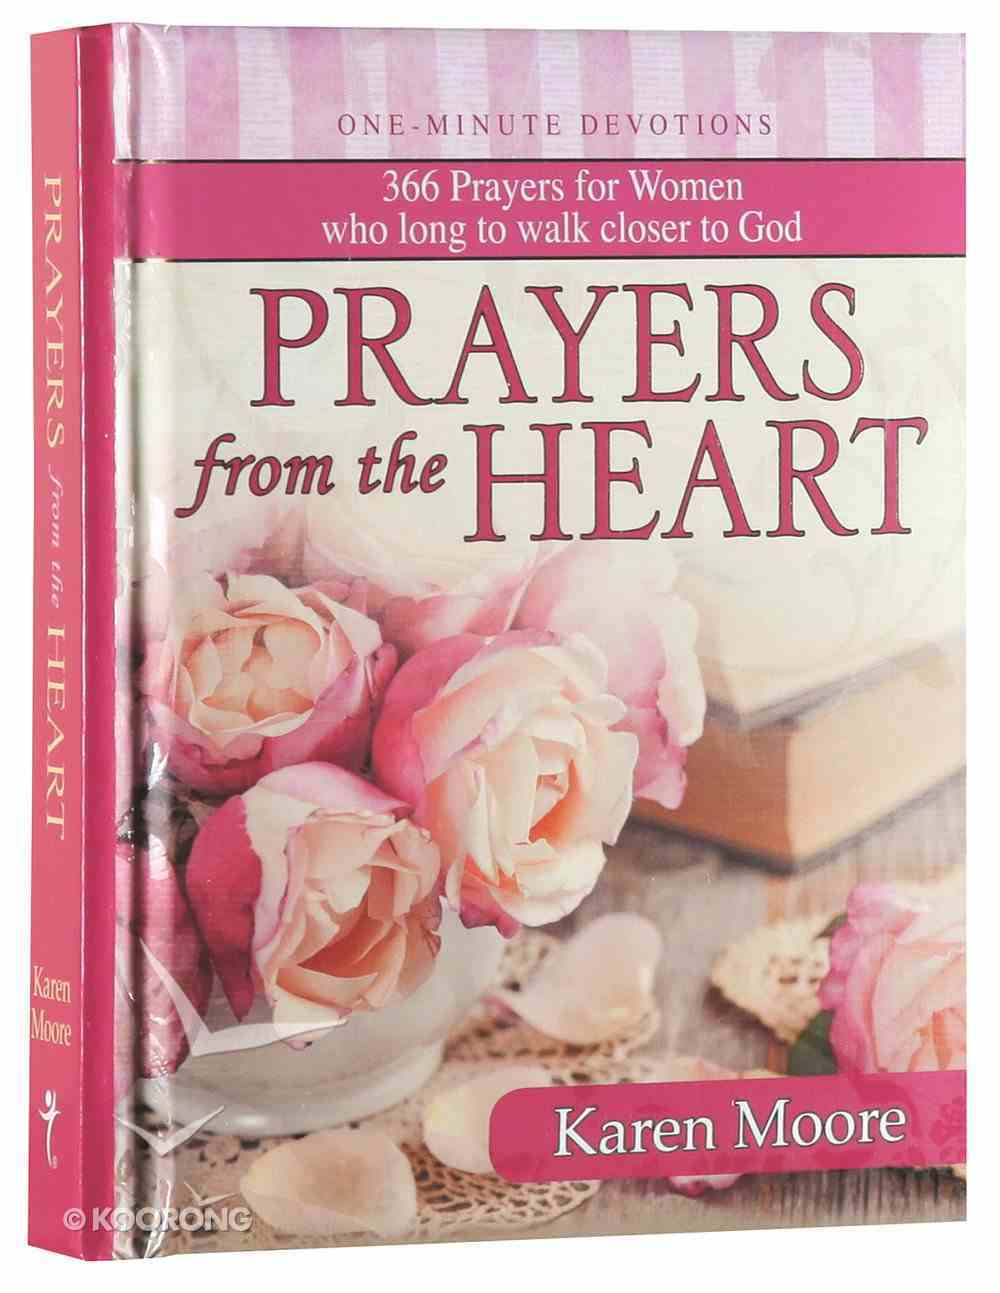 One Minute Devotions: Prayers From the Heart Hardback